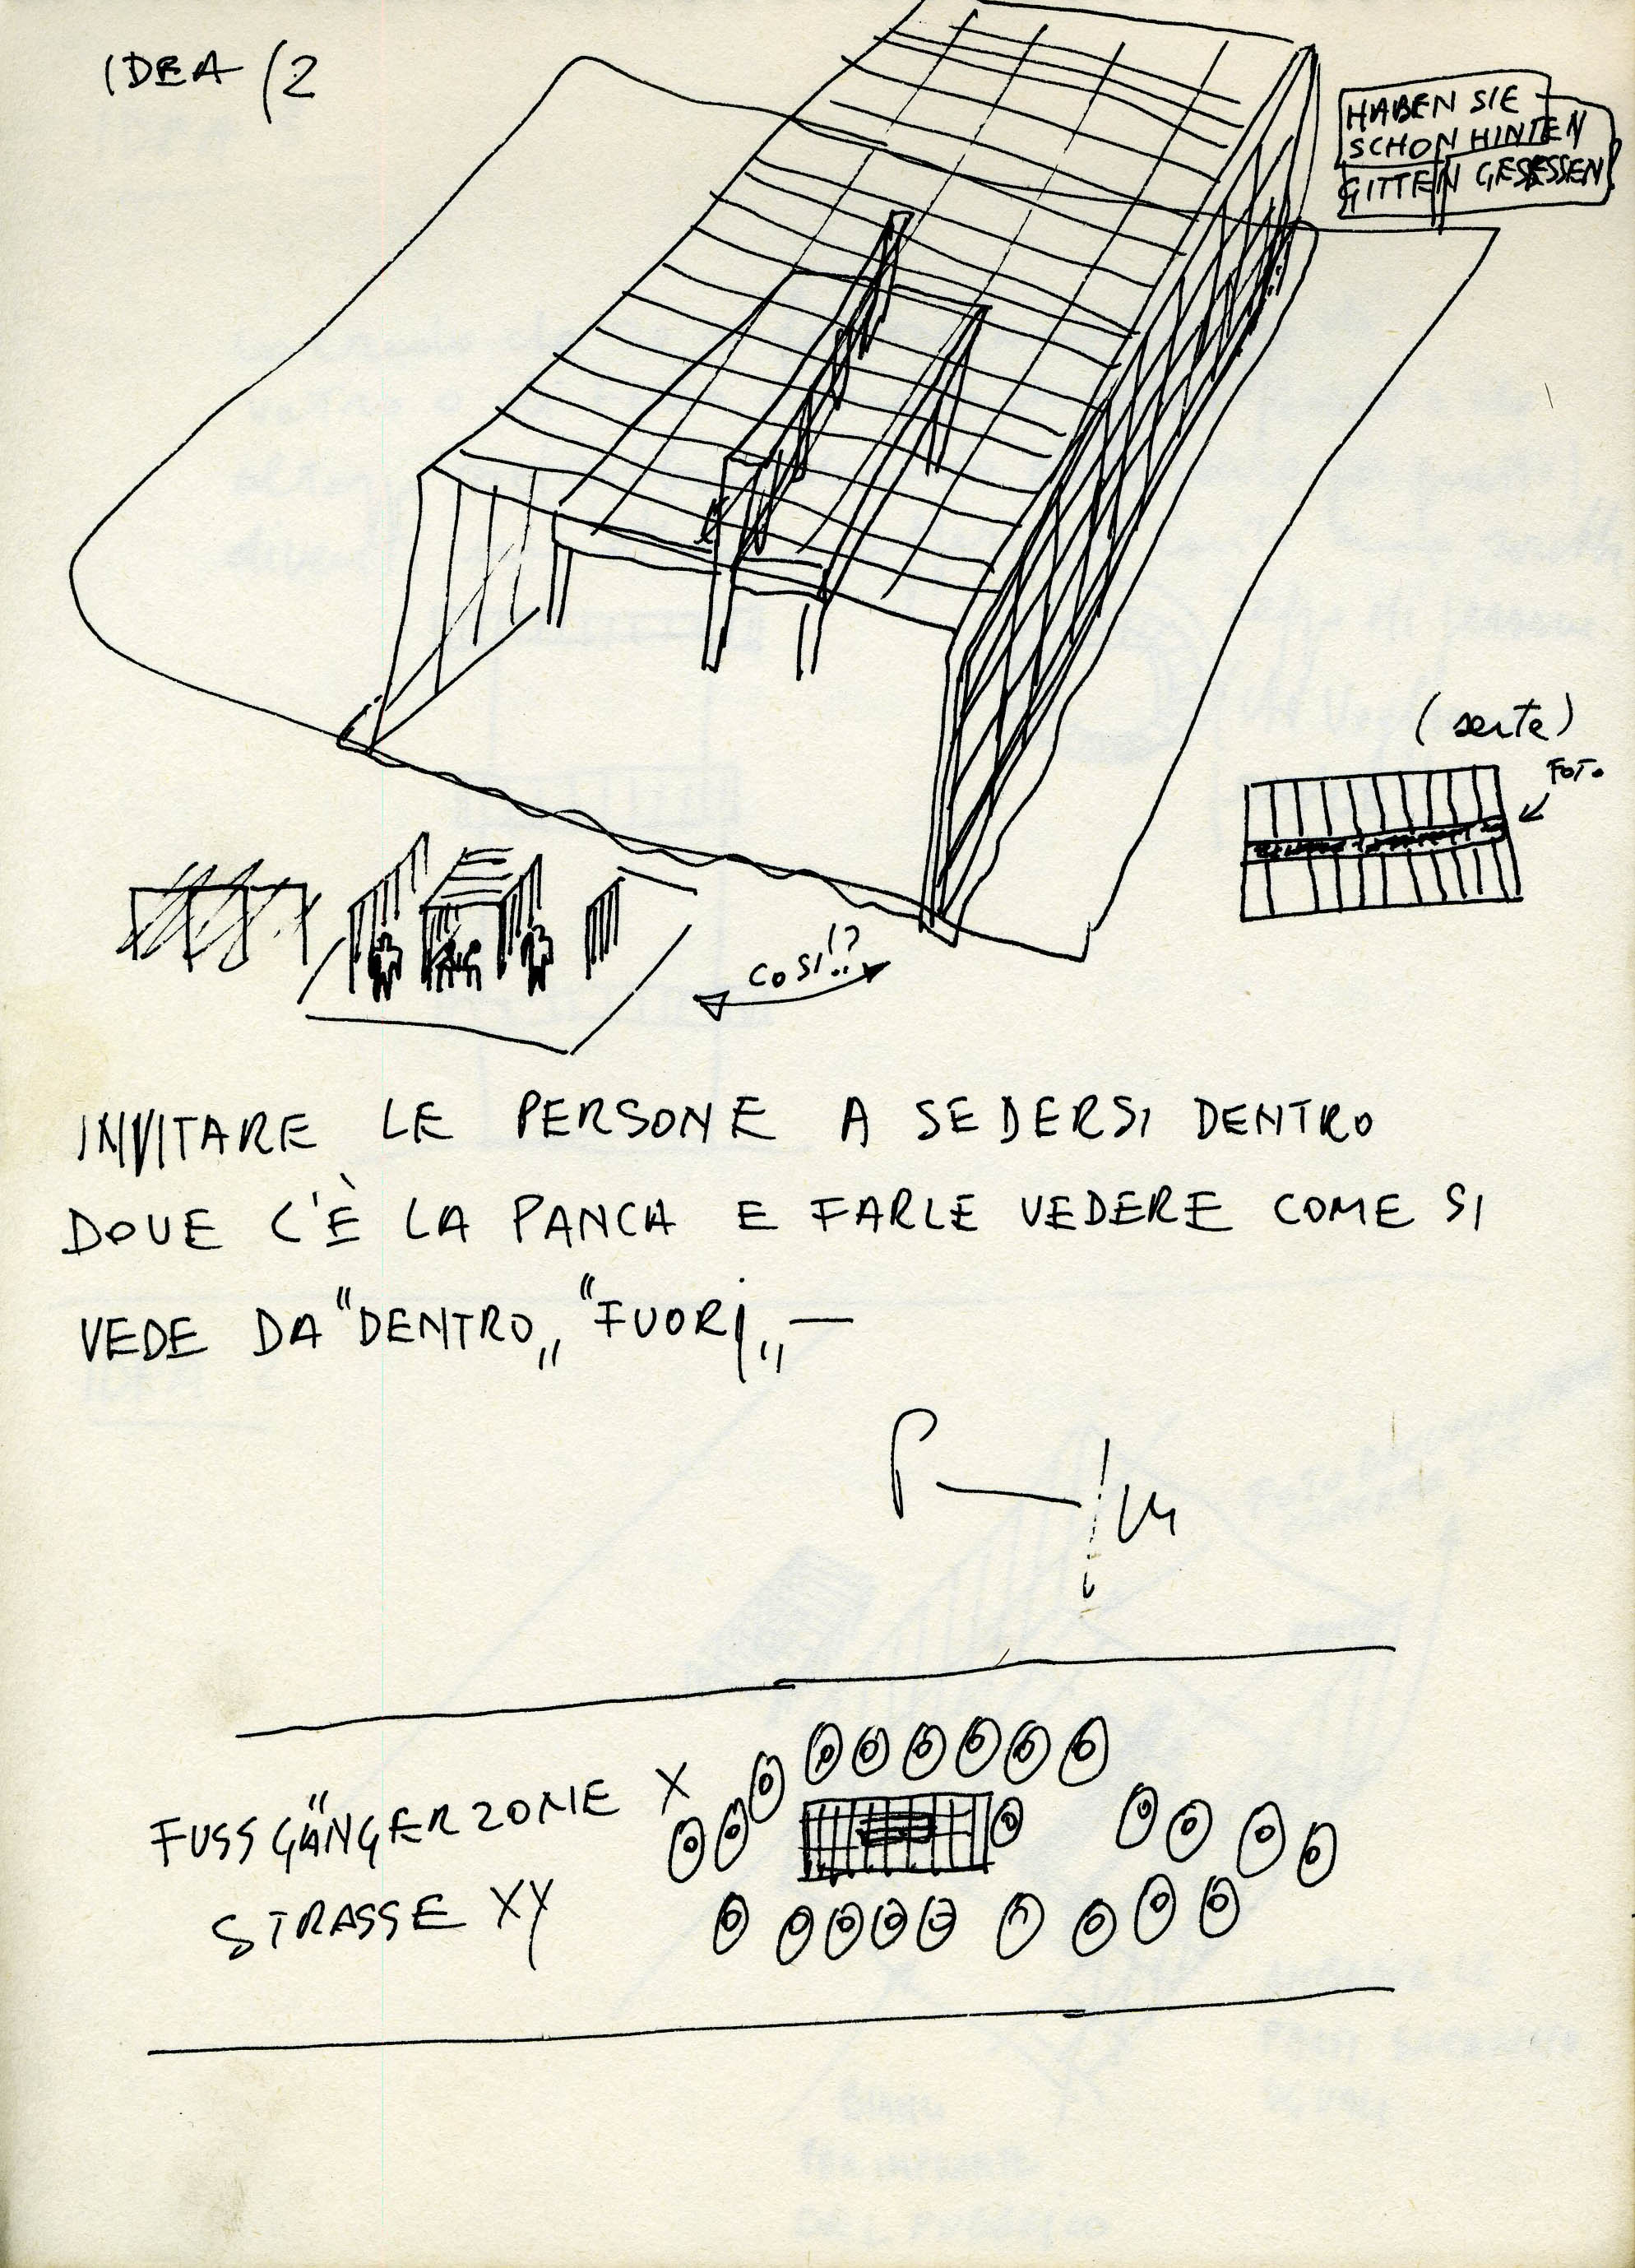 Sketch shows tunnel made of bars, set-up plan, and various notes